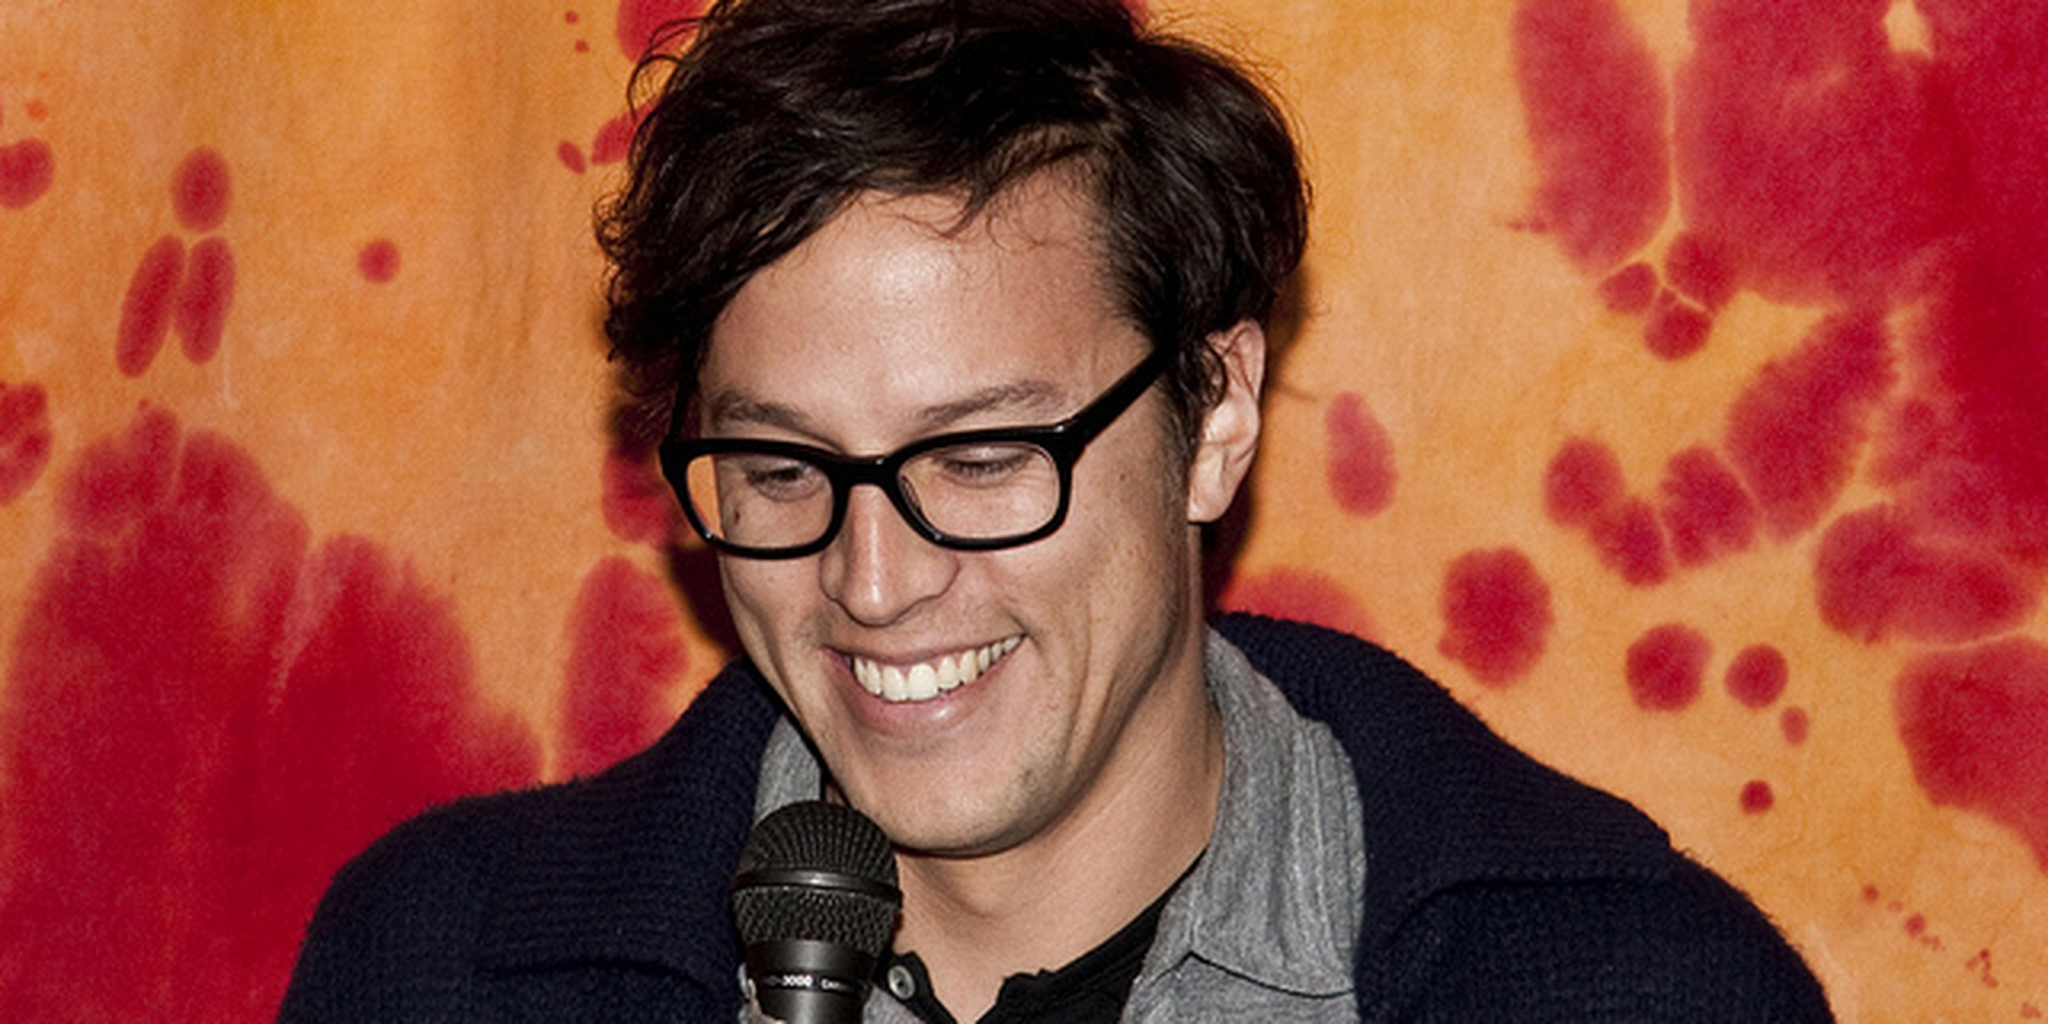 Movie Director Fukunaga in front of a microphone